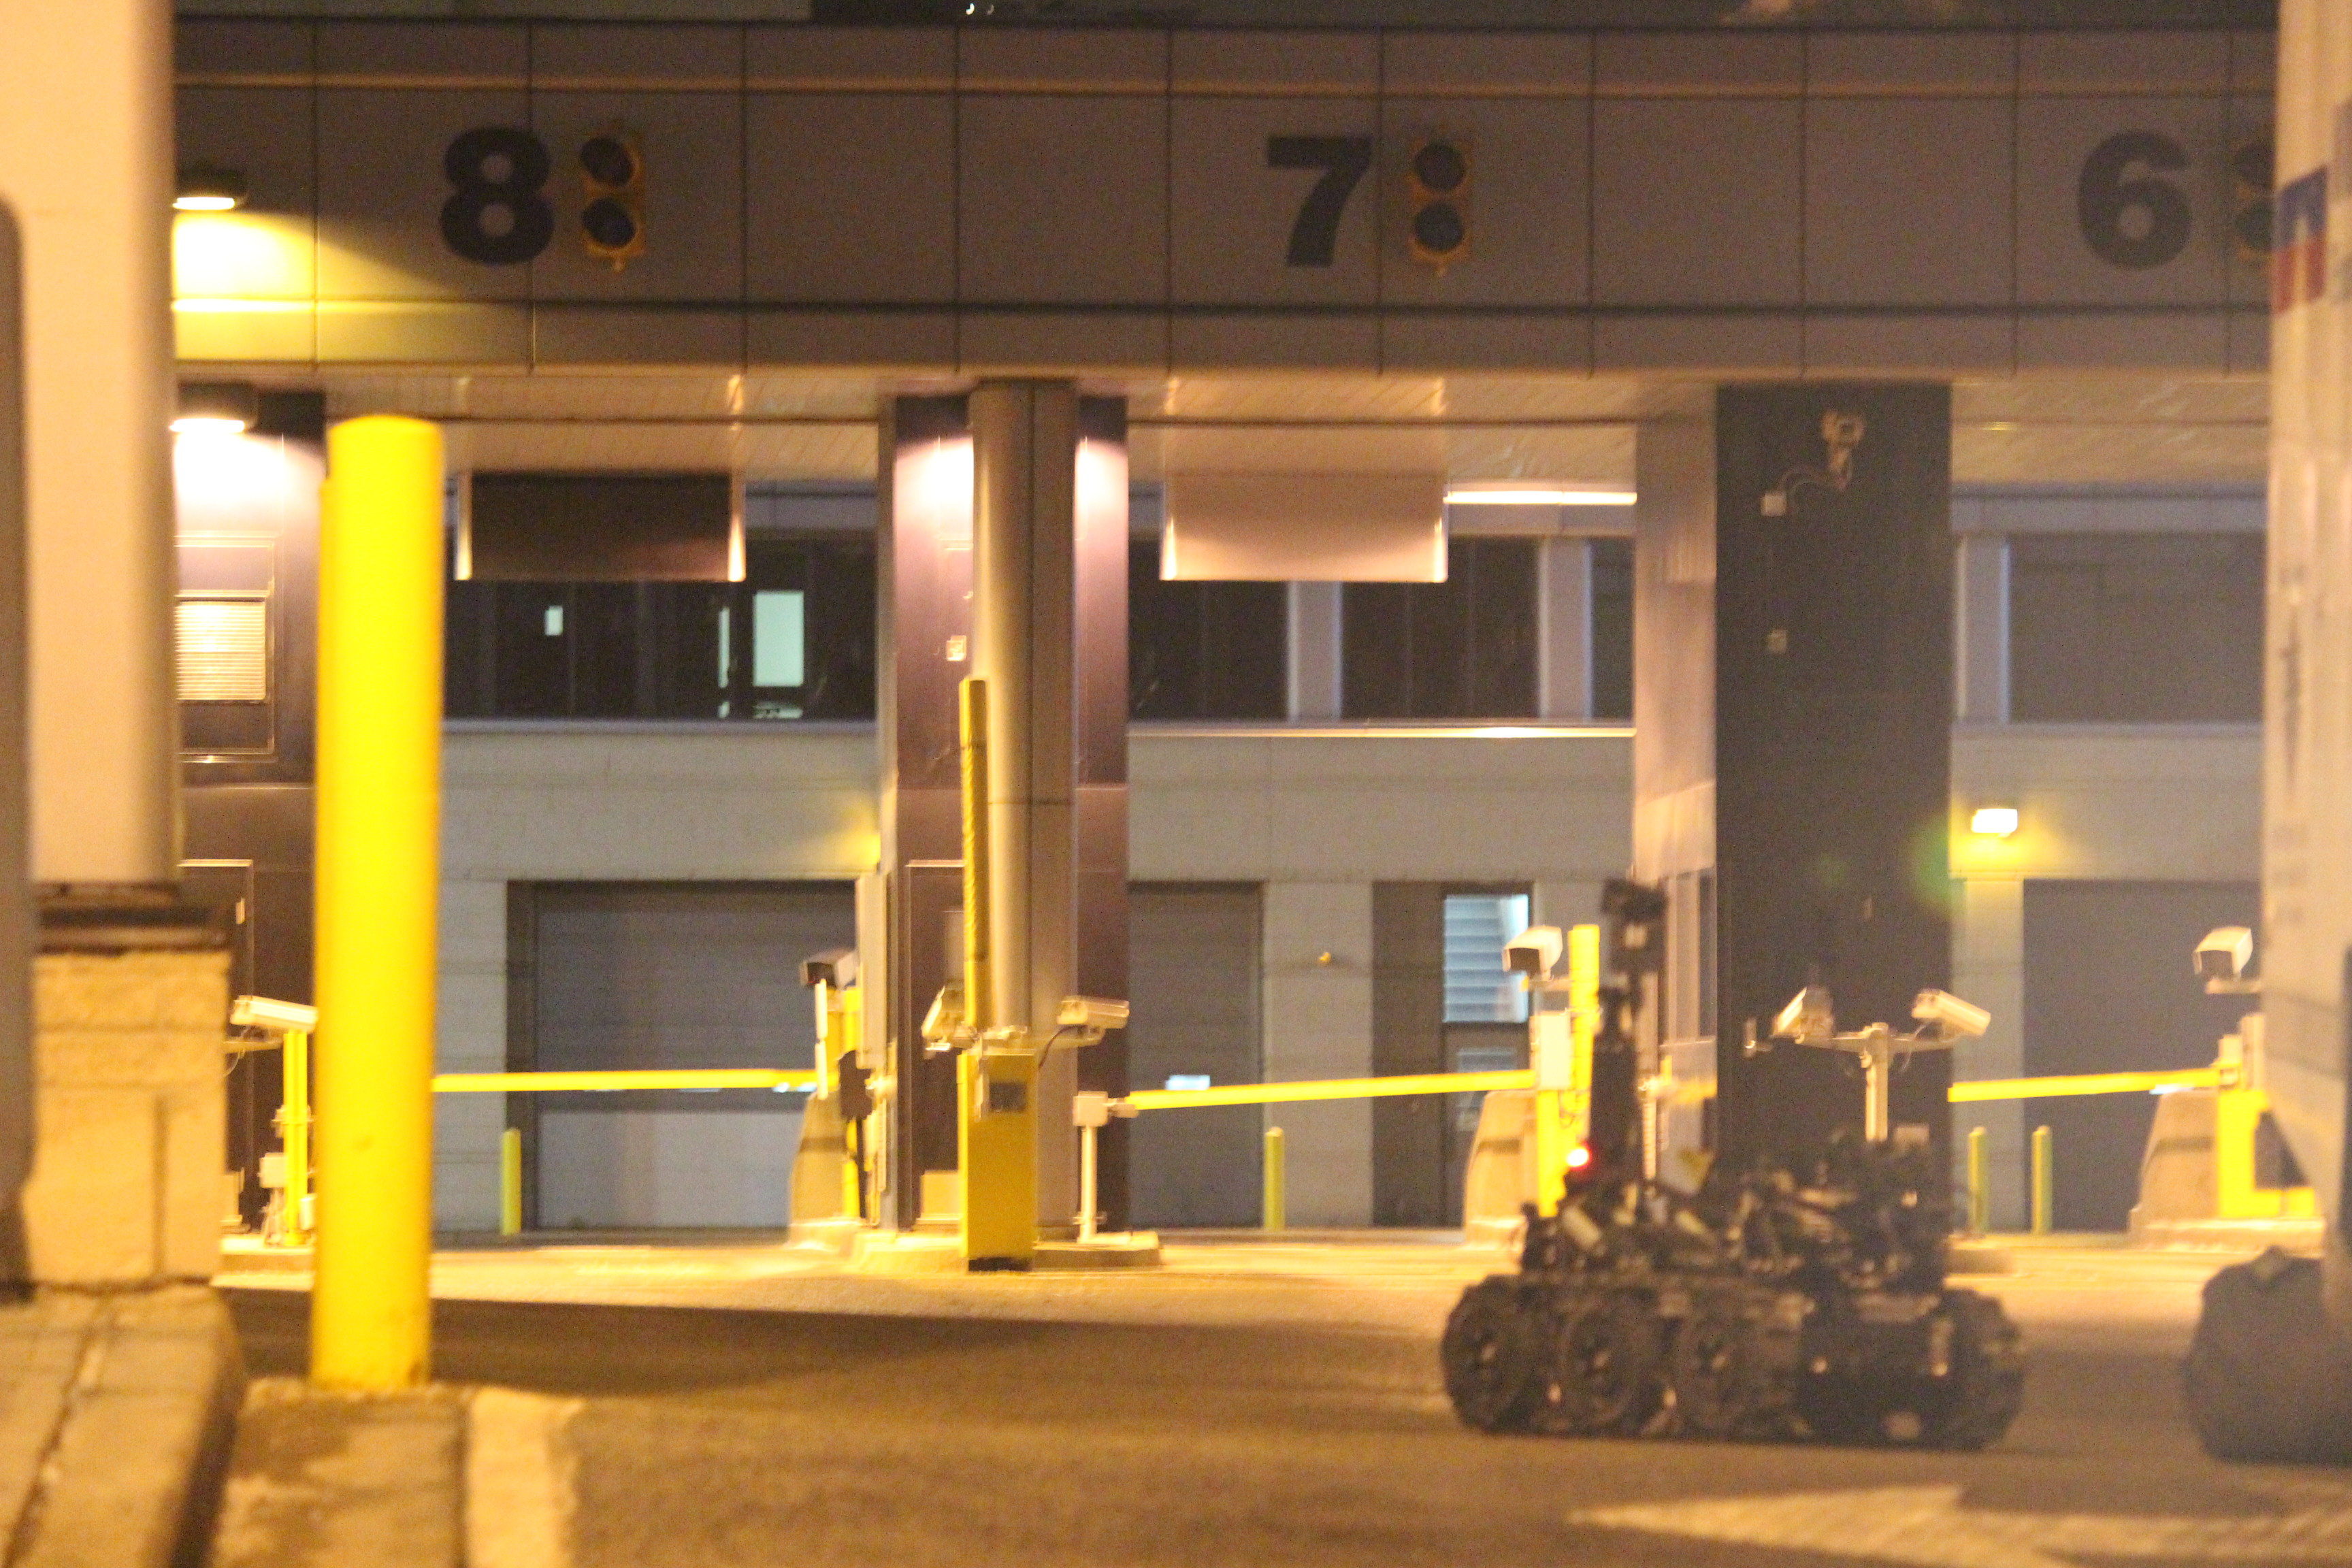 The Windsor police Explosive Disposal Unit attended the Detroit-Windsor Tunnel after a suspicious package was found on January 20, 2015. (Photo by Jason Viau)